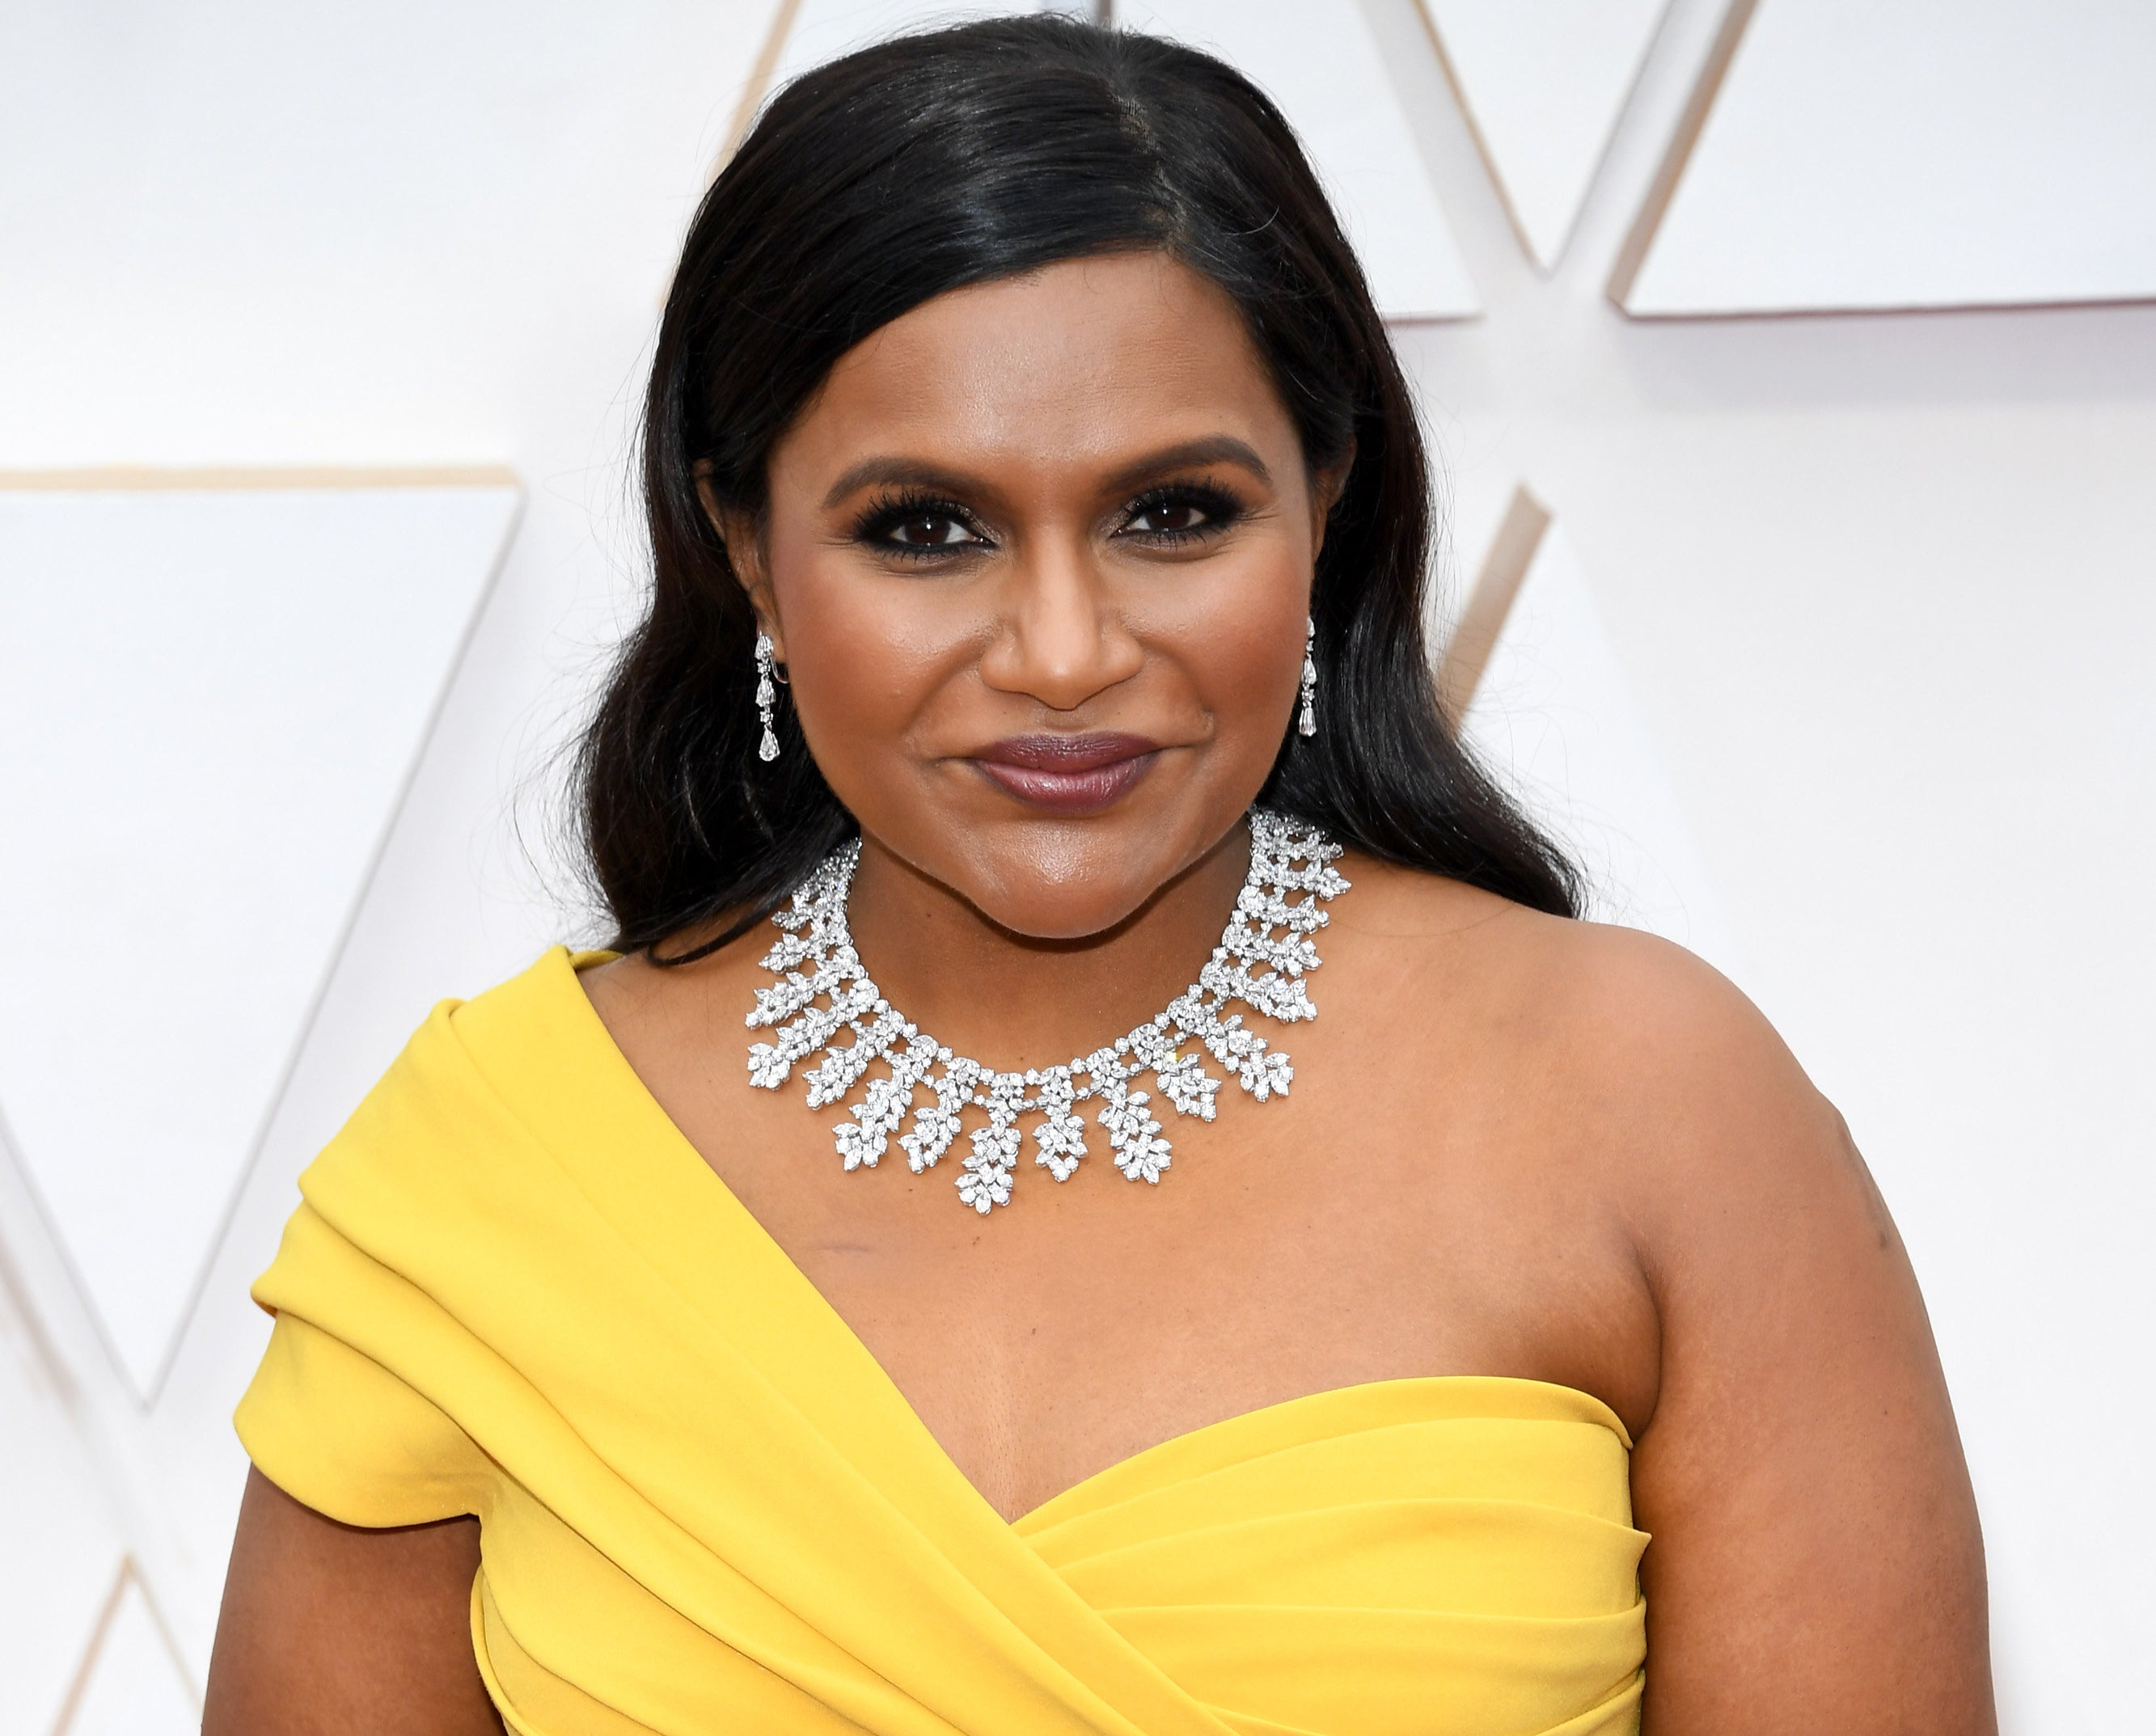 Mindy wears a yellow one-shoulder dress with a diamond necklace